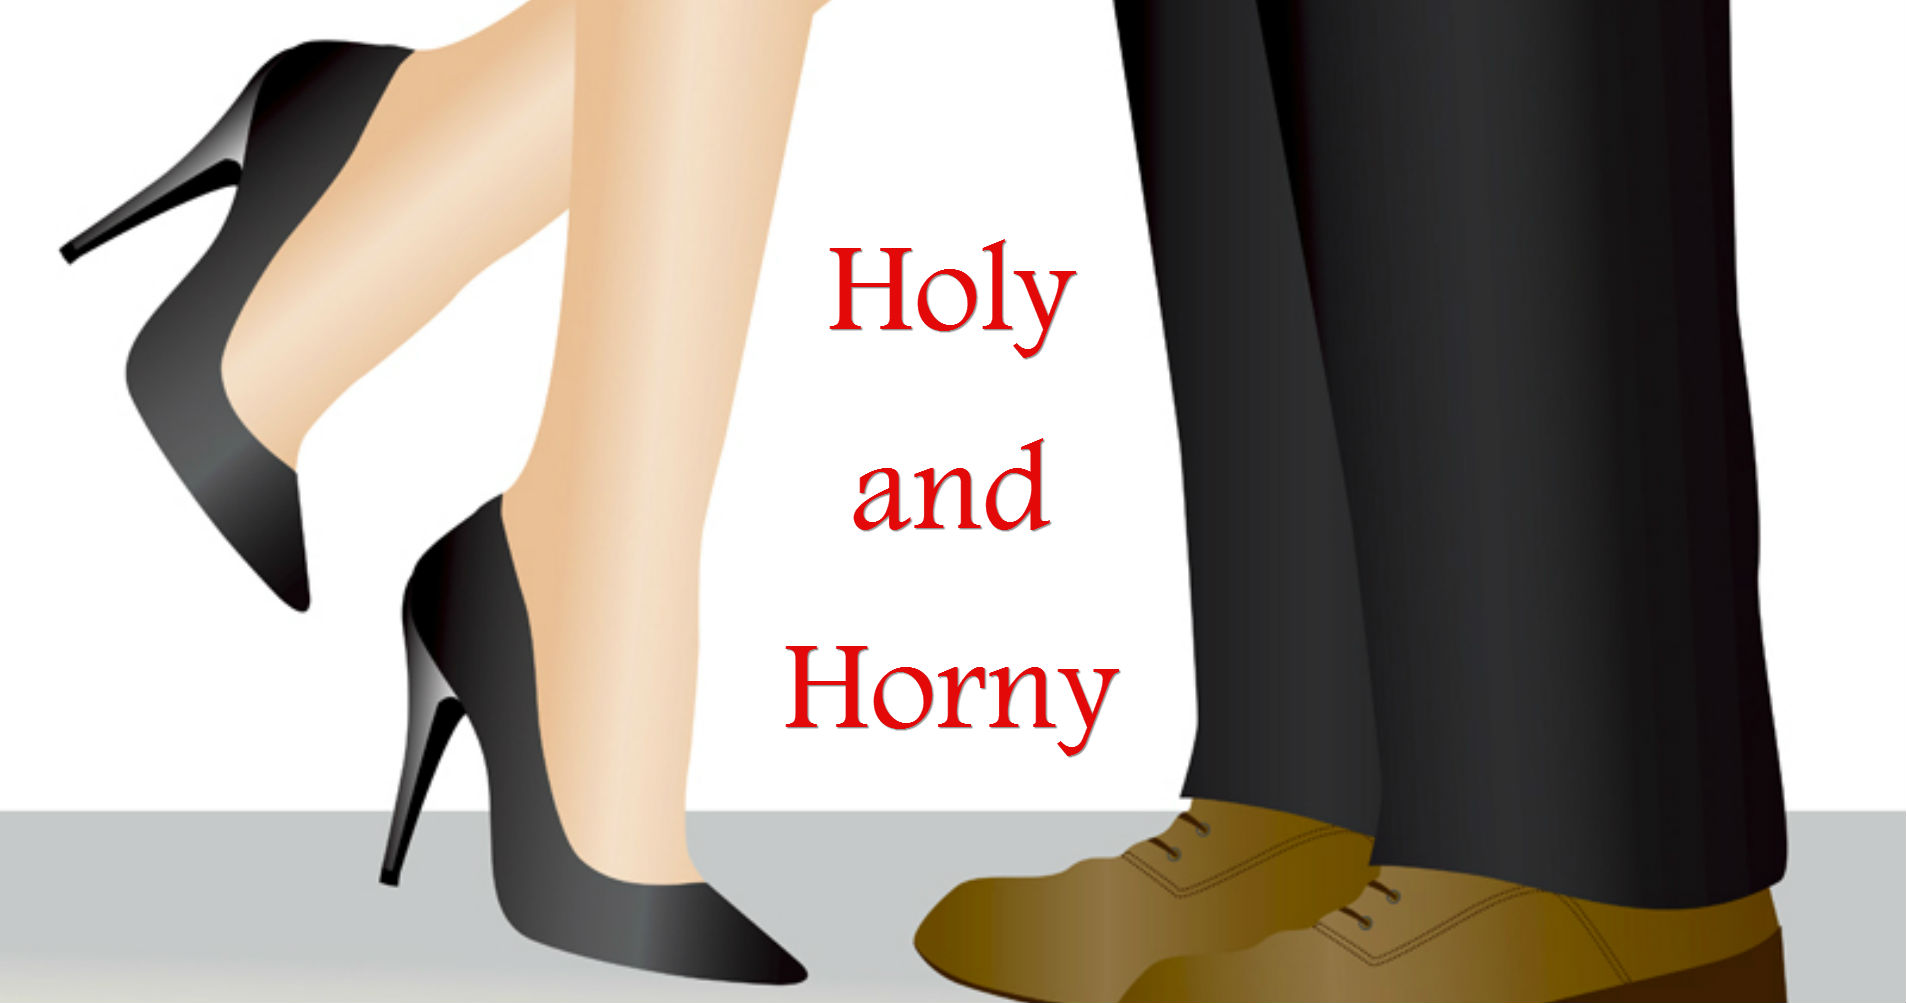 Holy and horny